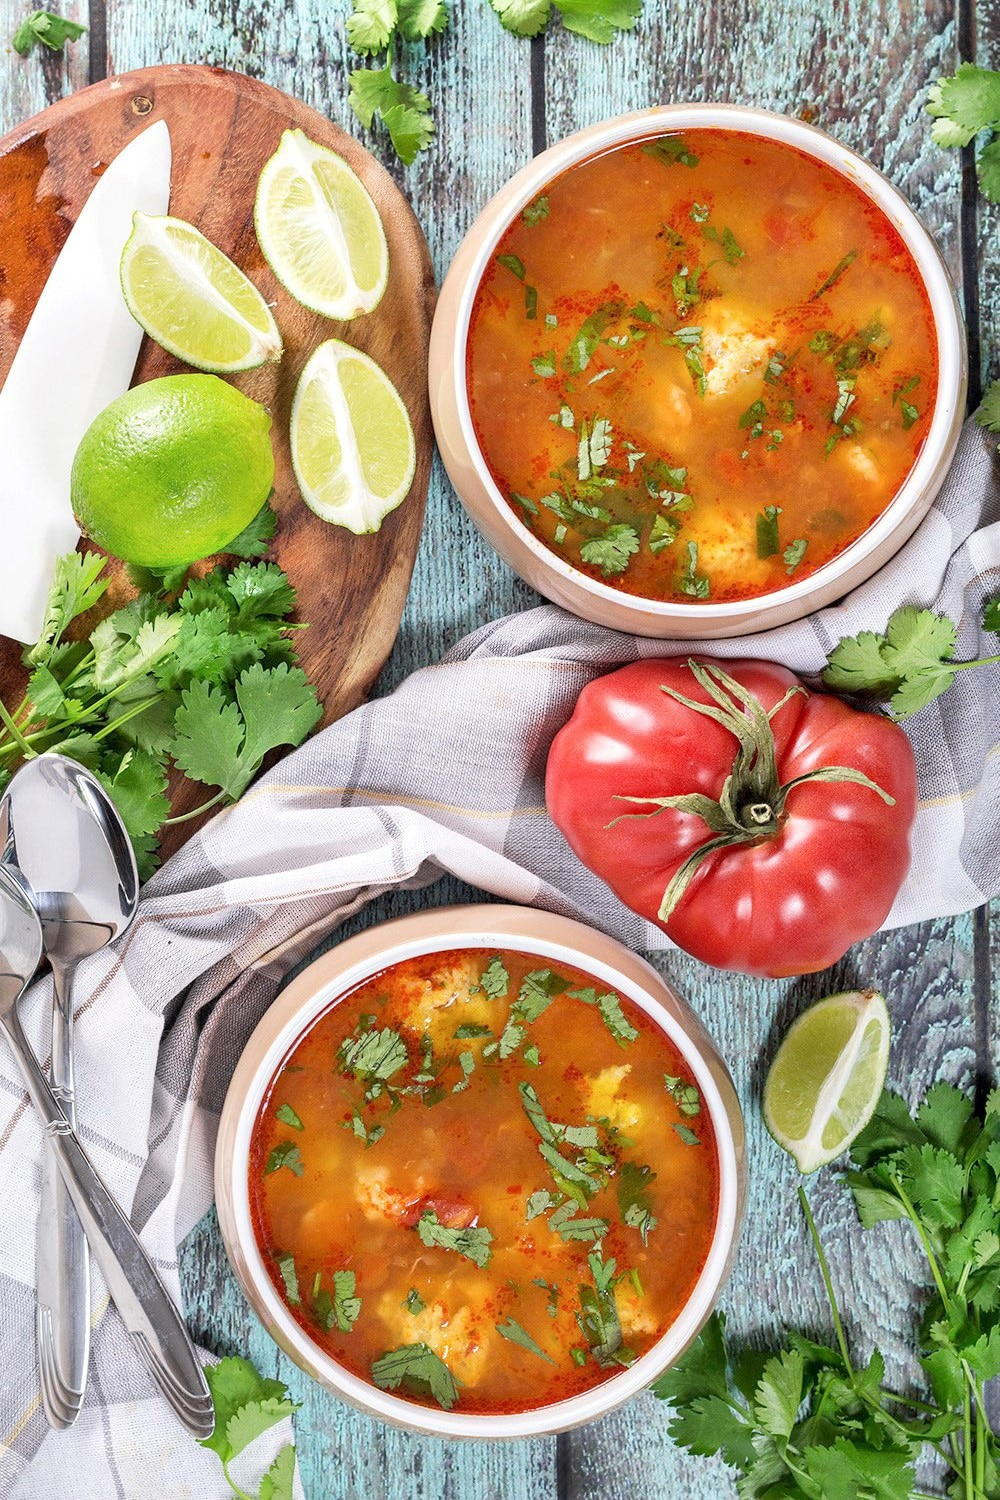 This amazing Mexican Shrimp Soup features super tender shrimp meatballs swimming in a flavorful spicy tomato broth. So easy and quick to make!   cookingtheglobe.com